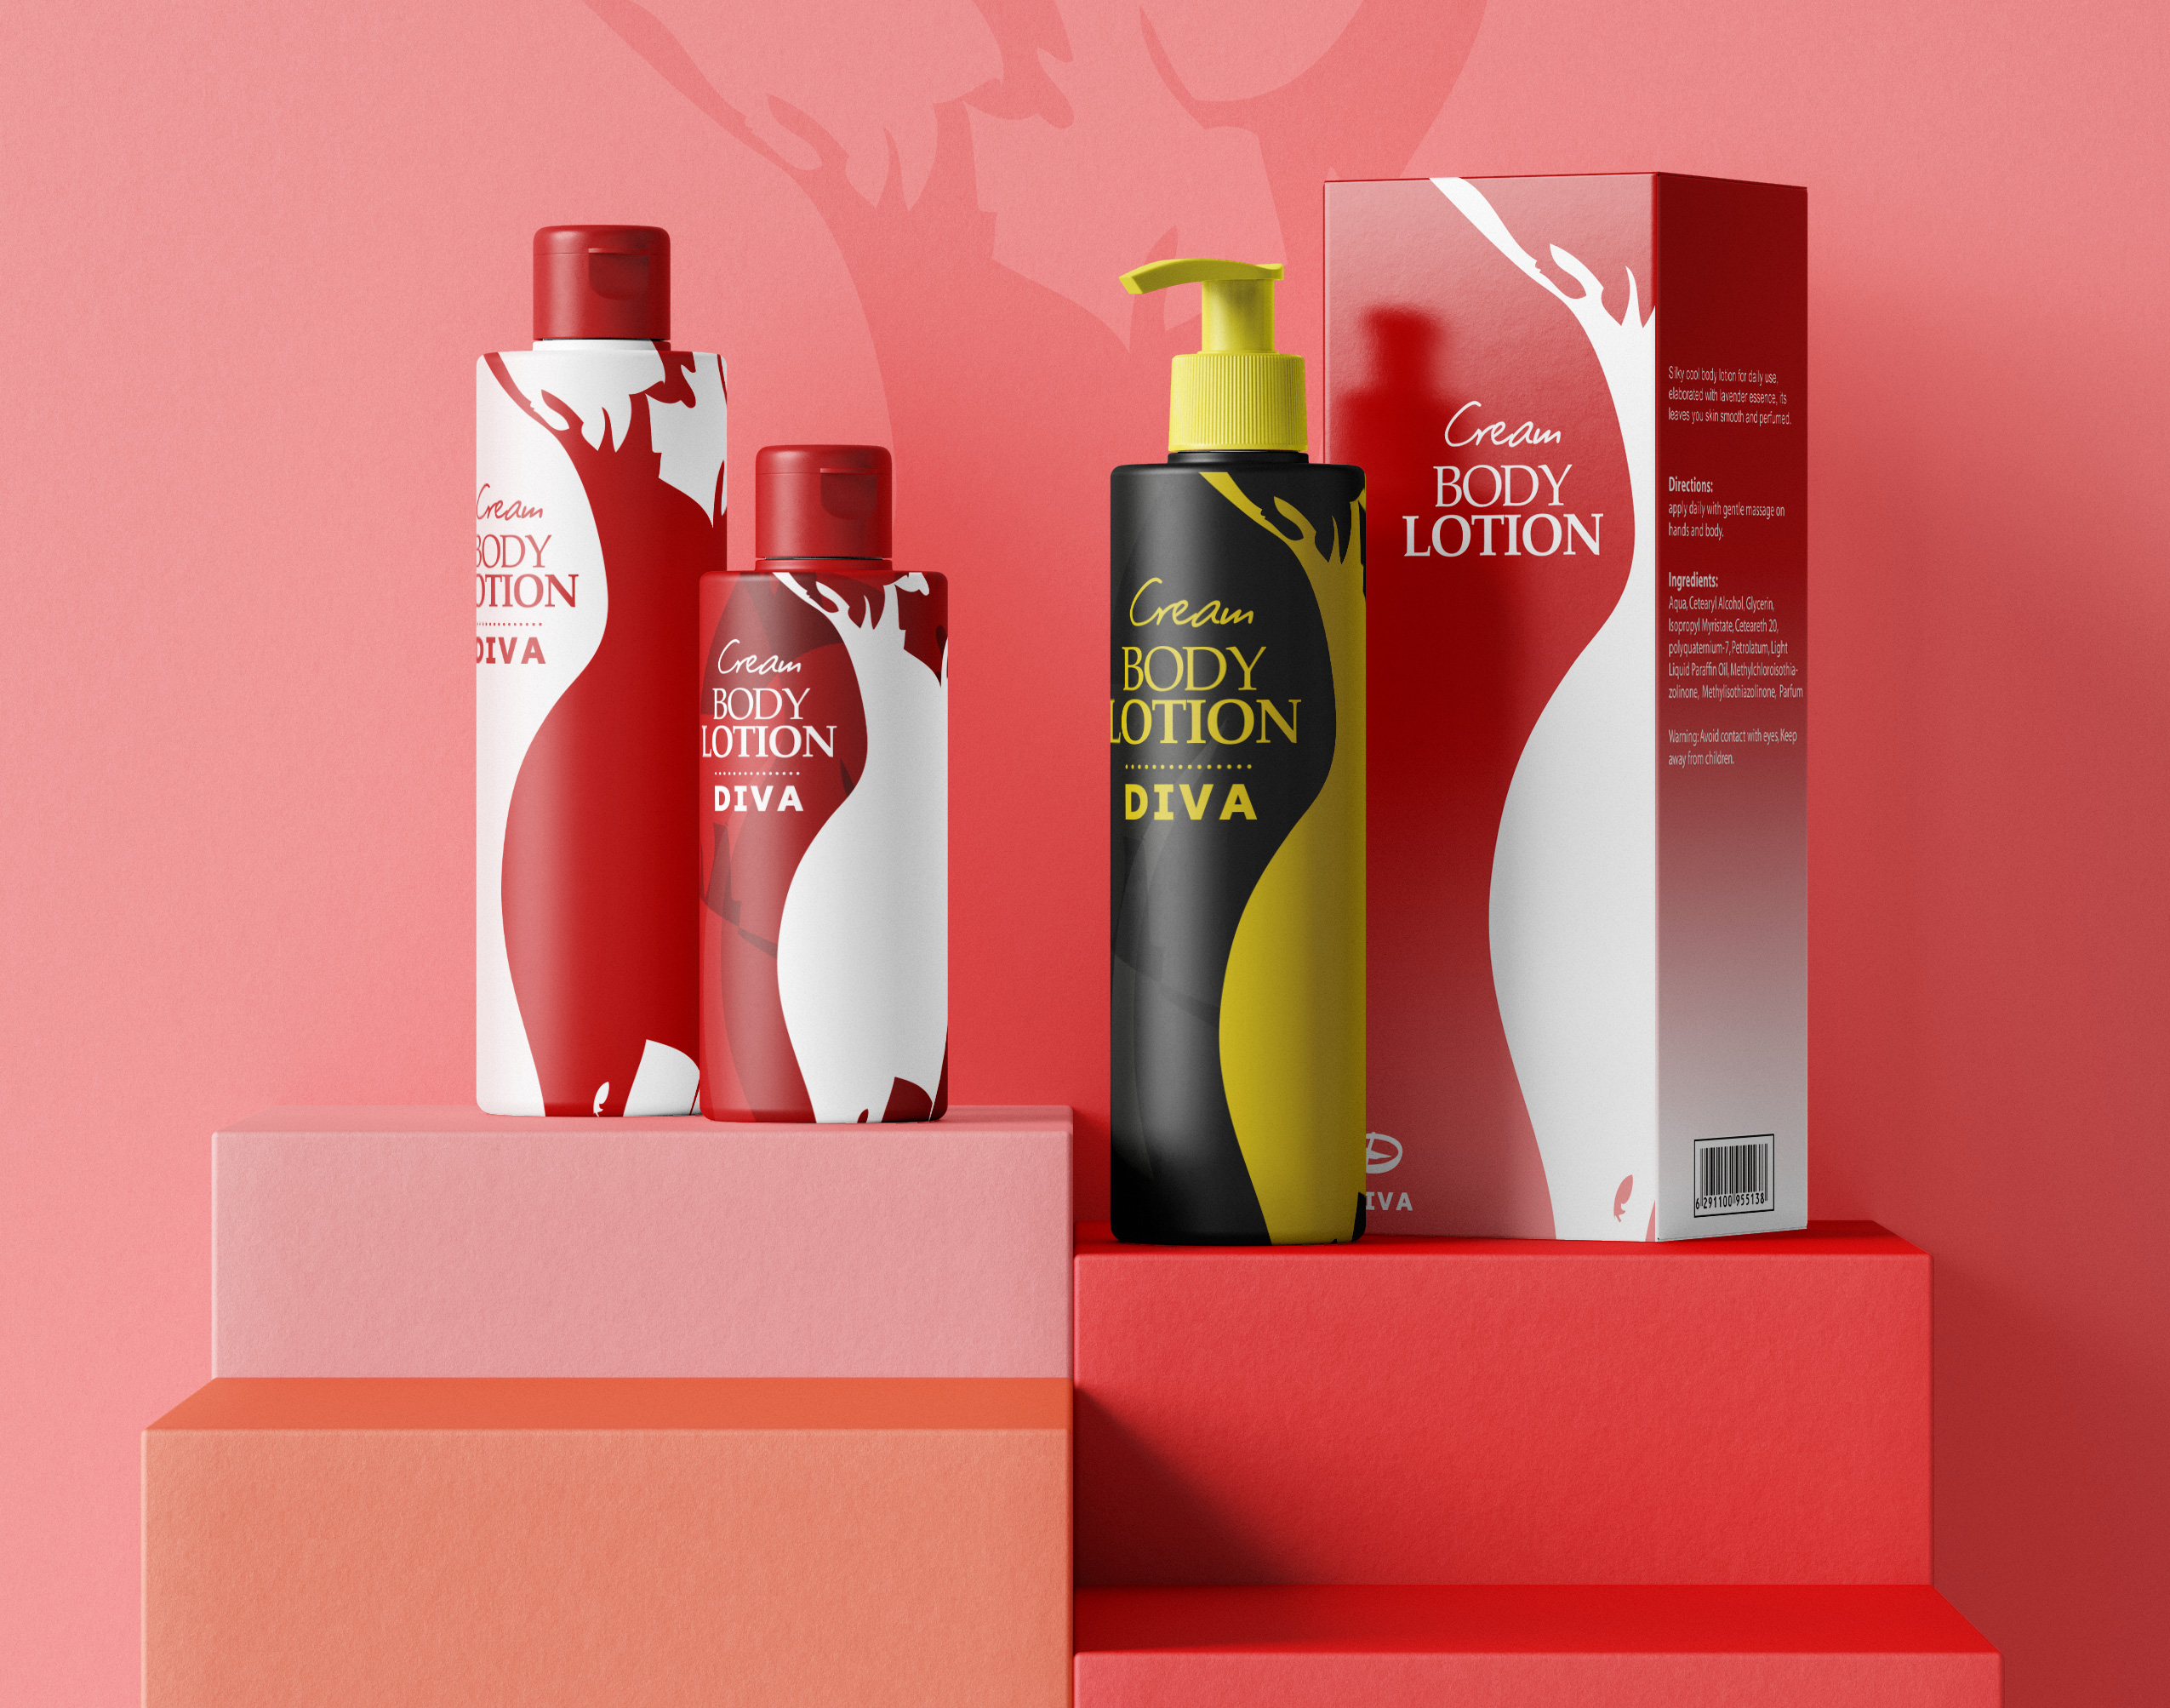 Packaging design for a body lotion product.